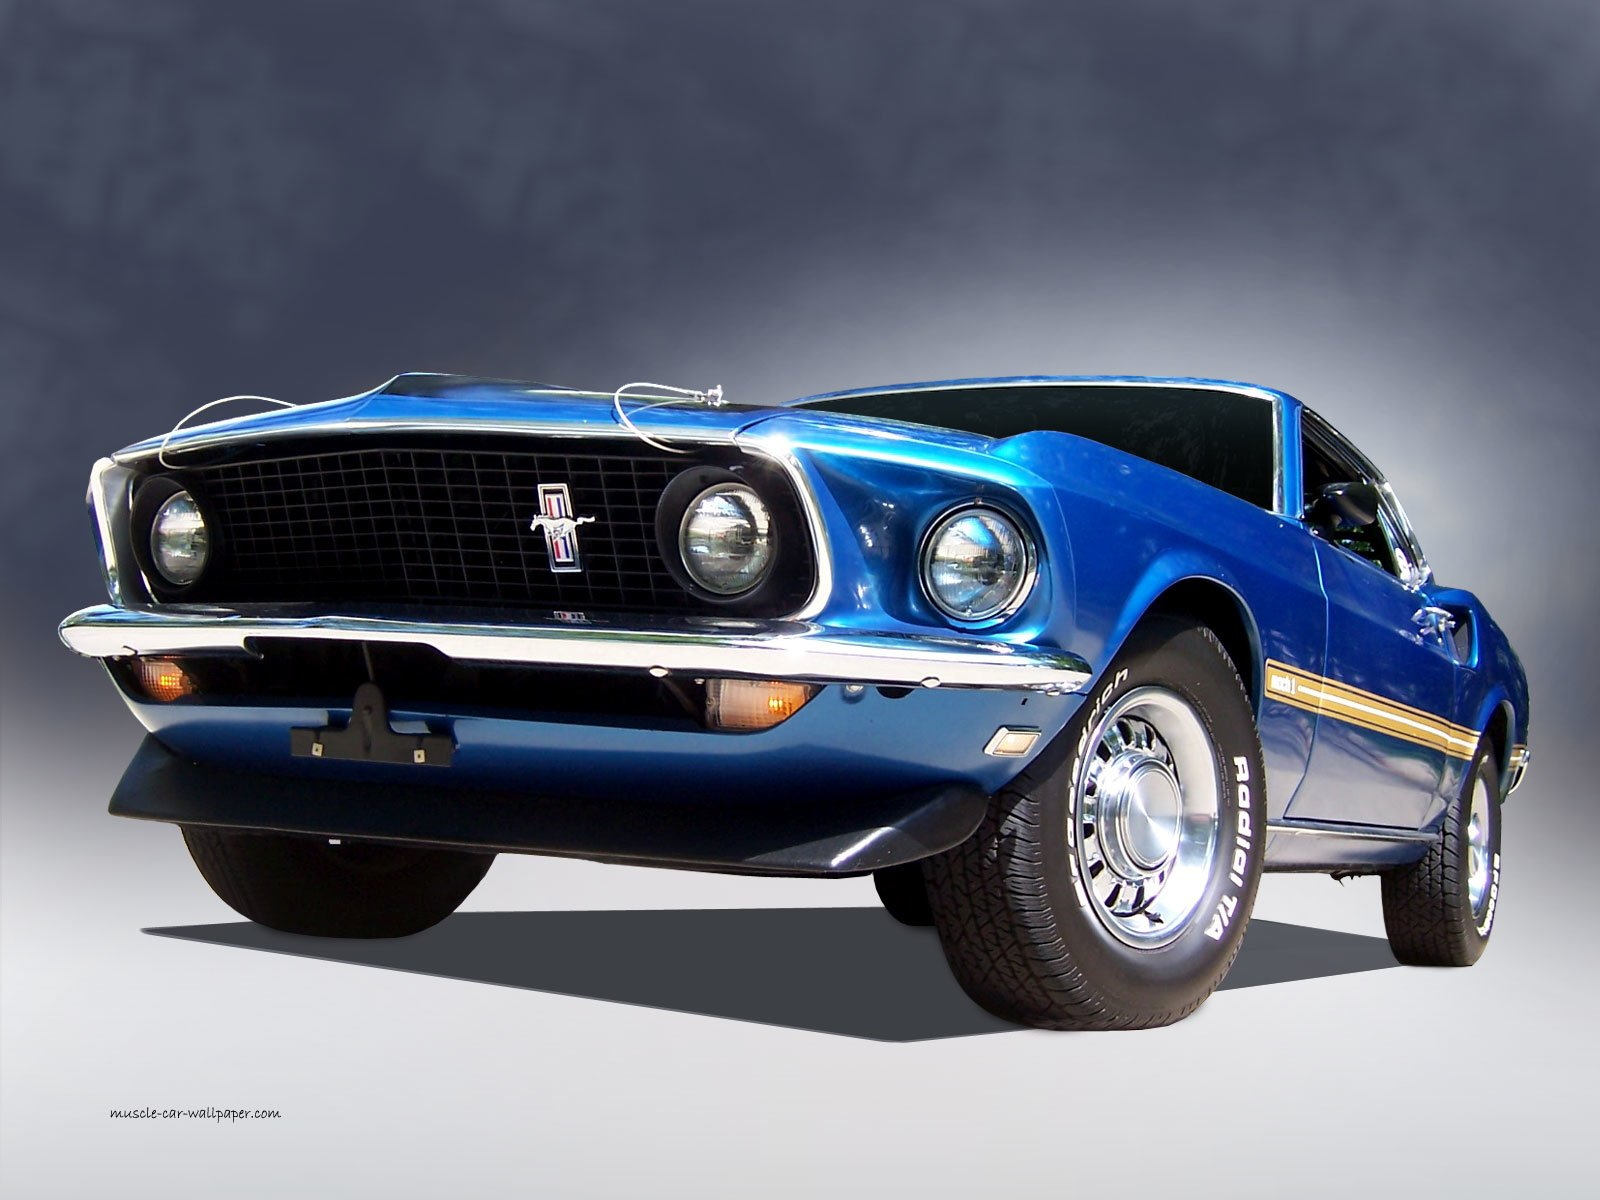 1969 Ford Mustang Mach 1 Wallpaper and Background Image ...